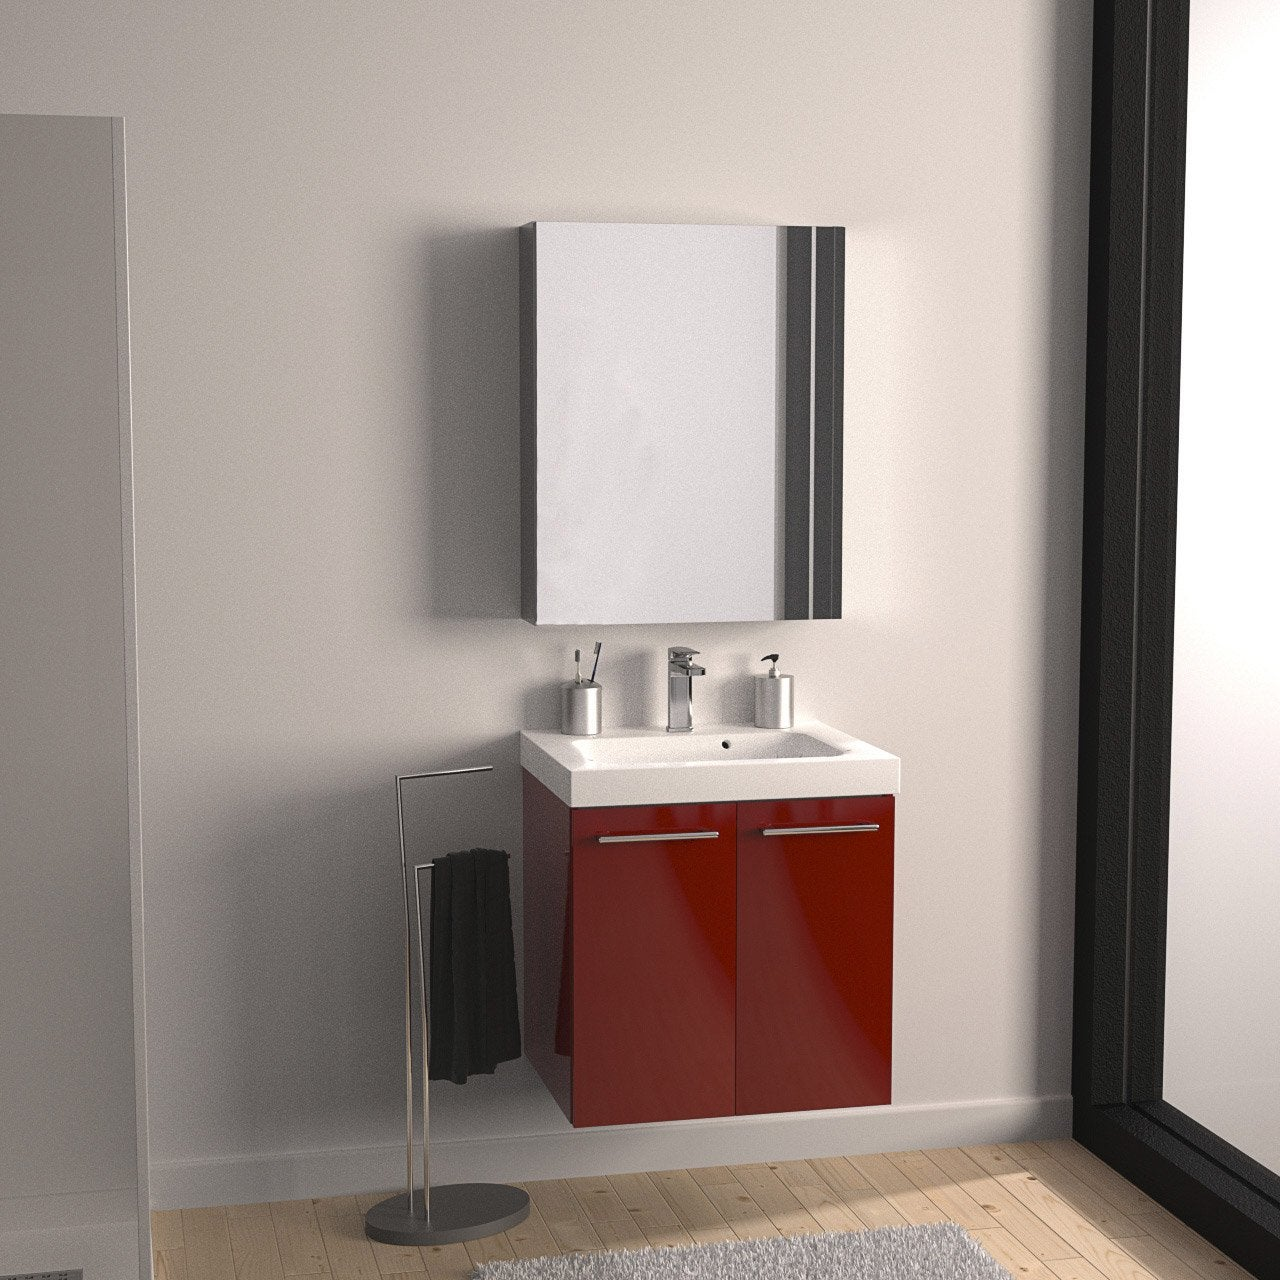 Meuble vasque x x cm rouge sensea remix for Meubles bain leroy merlin